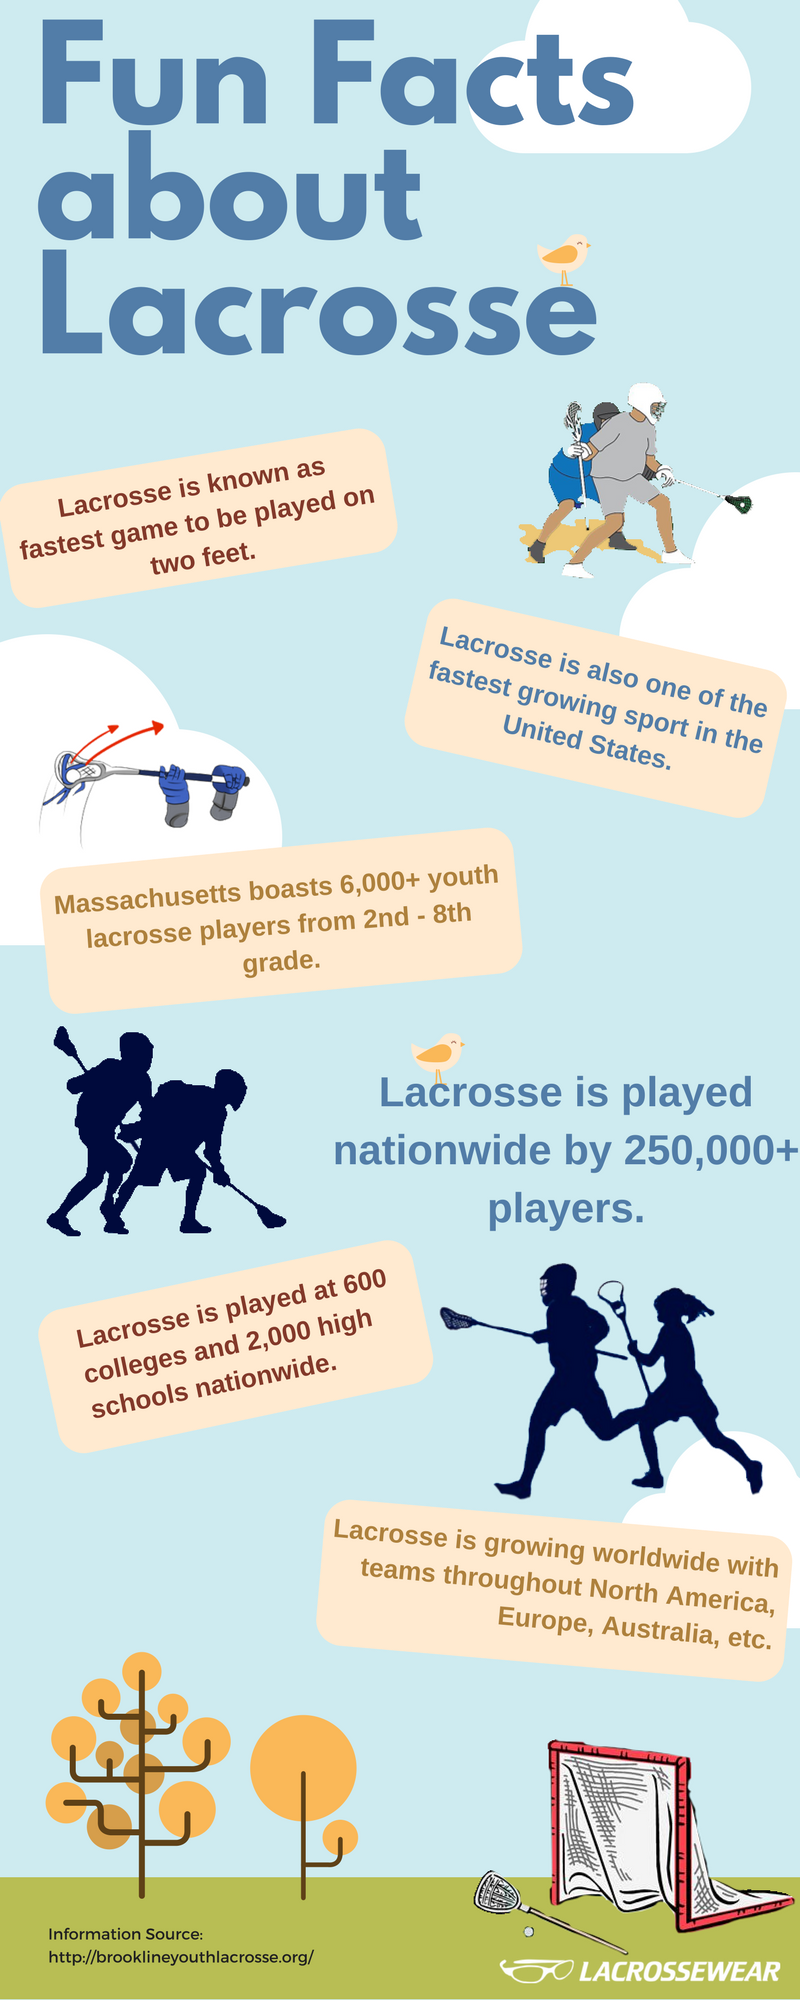 Fun Facts Lacrosse